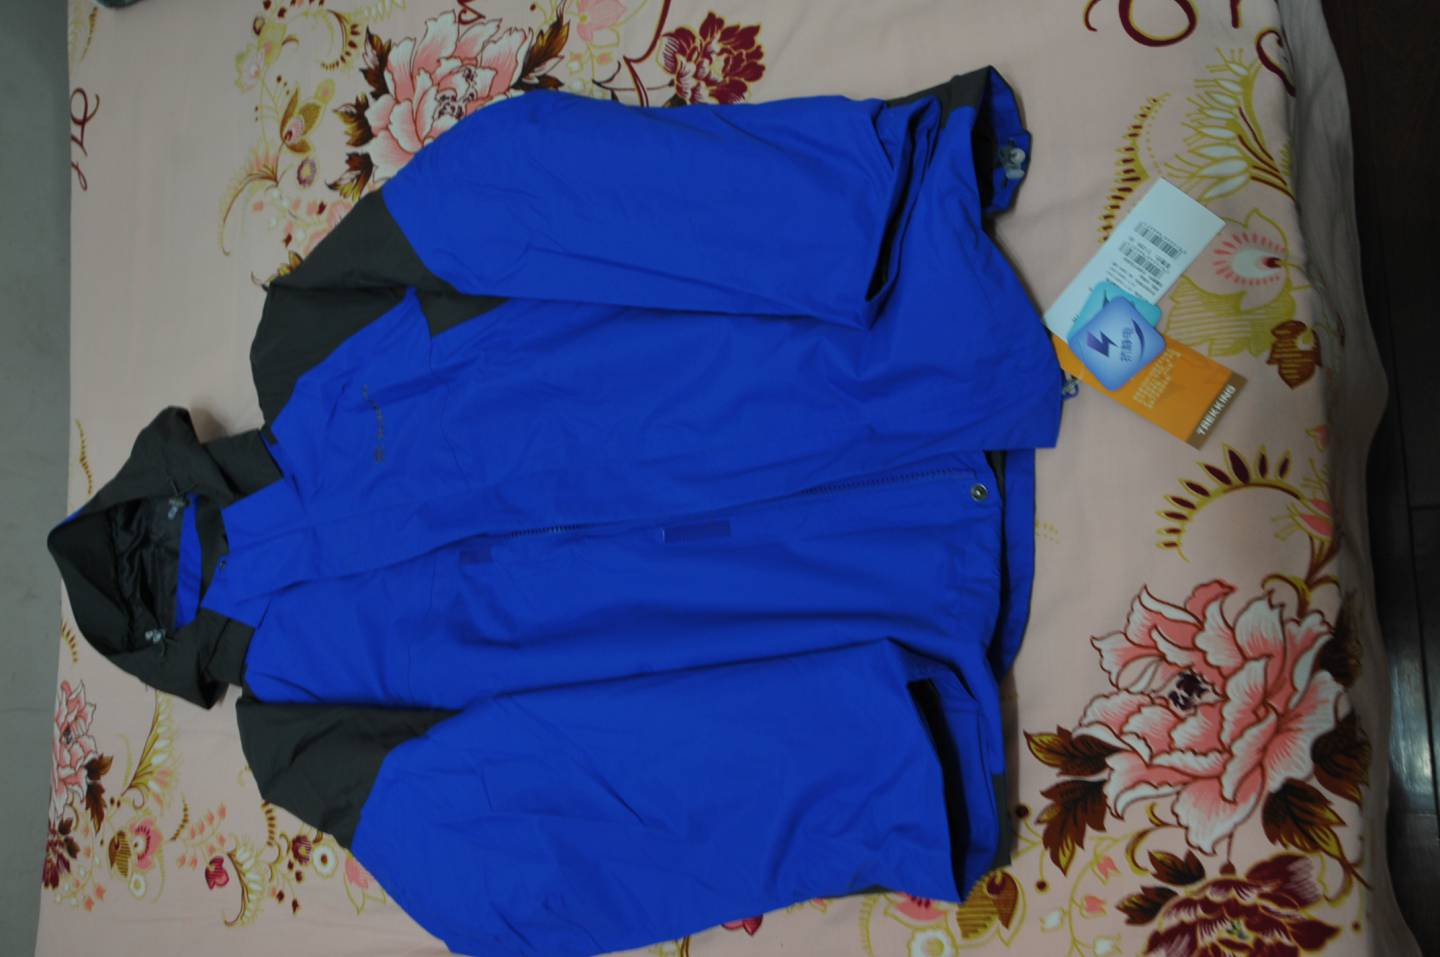 north jackets outlet 00286269 wholesale